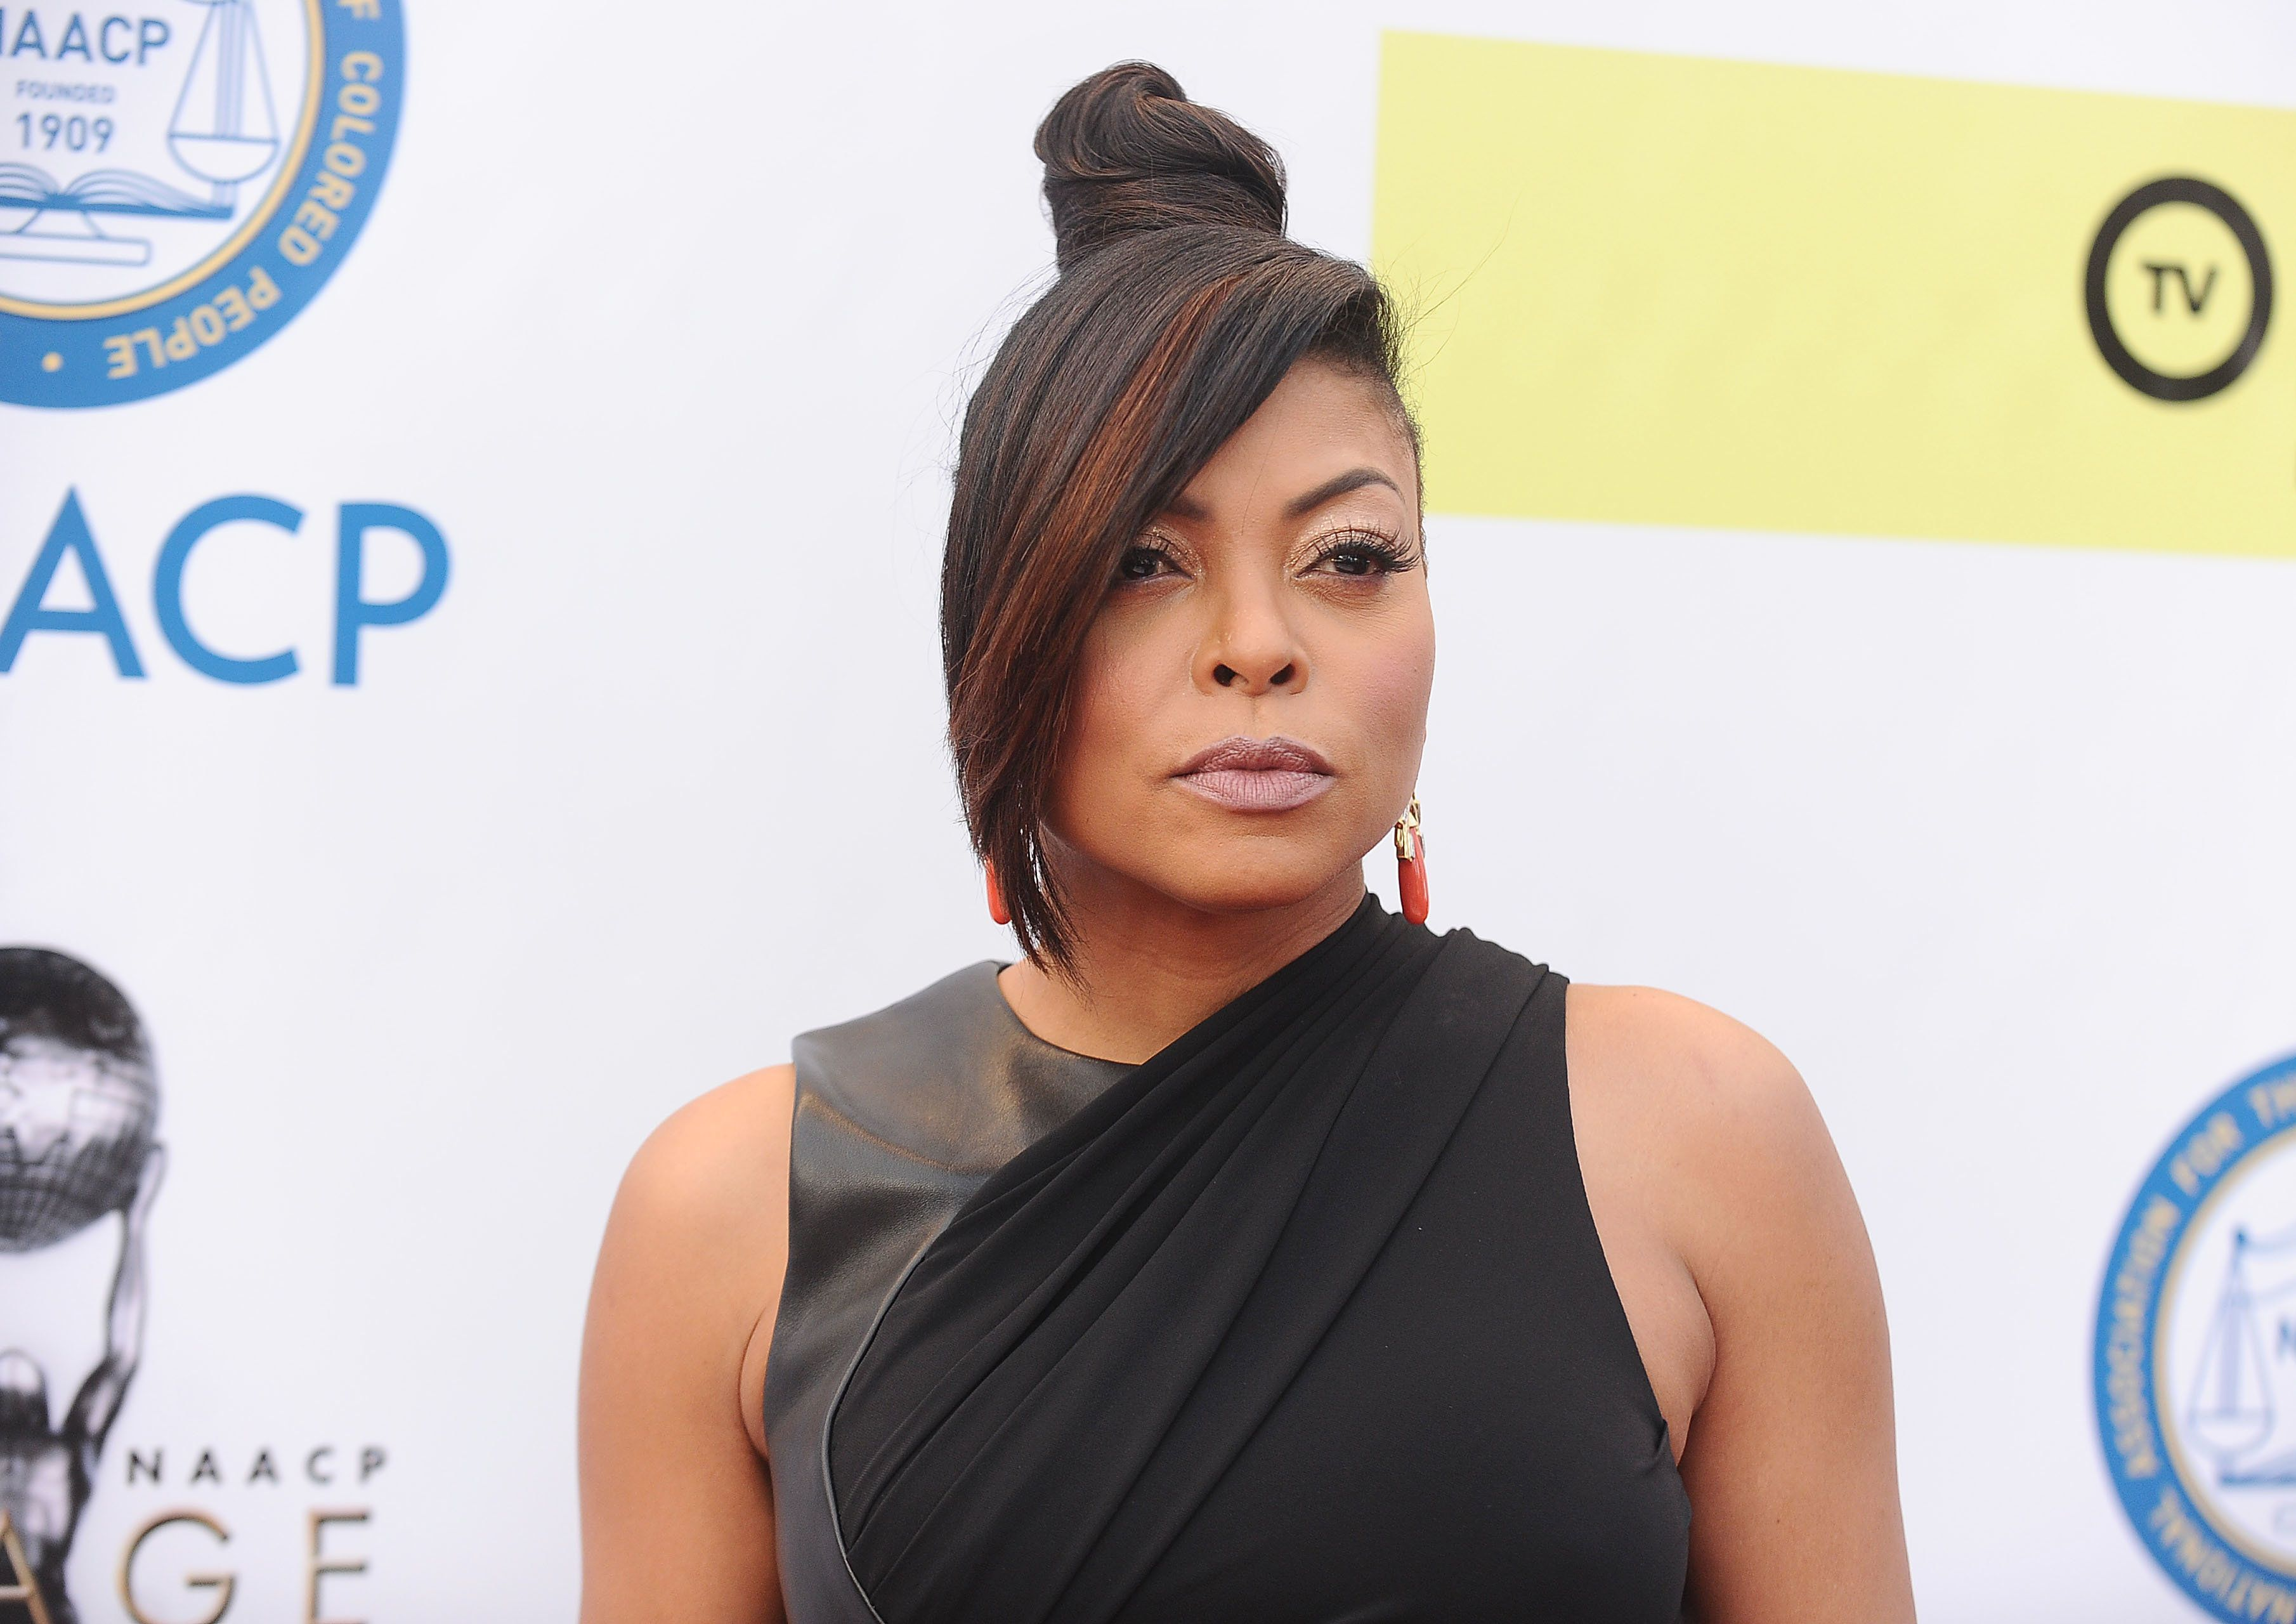 Taraji P. Henson On Charlottesville: We Must Continue To Fight, But Only Through Love